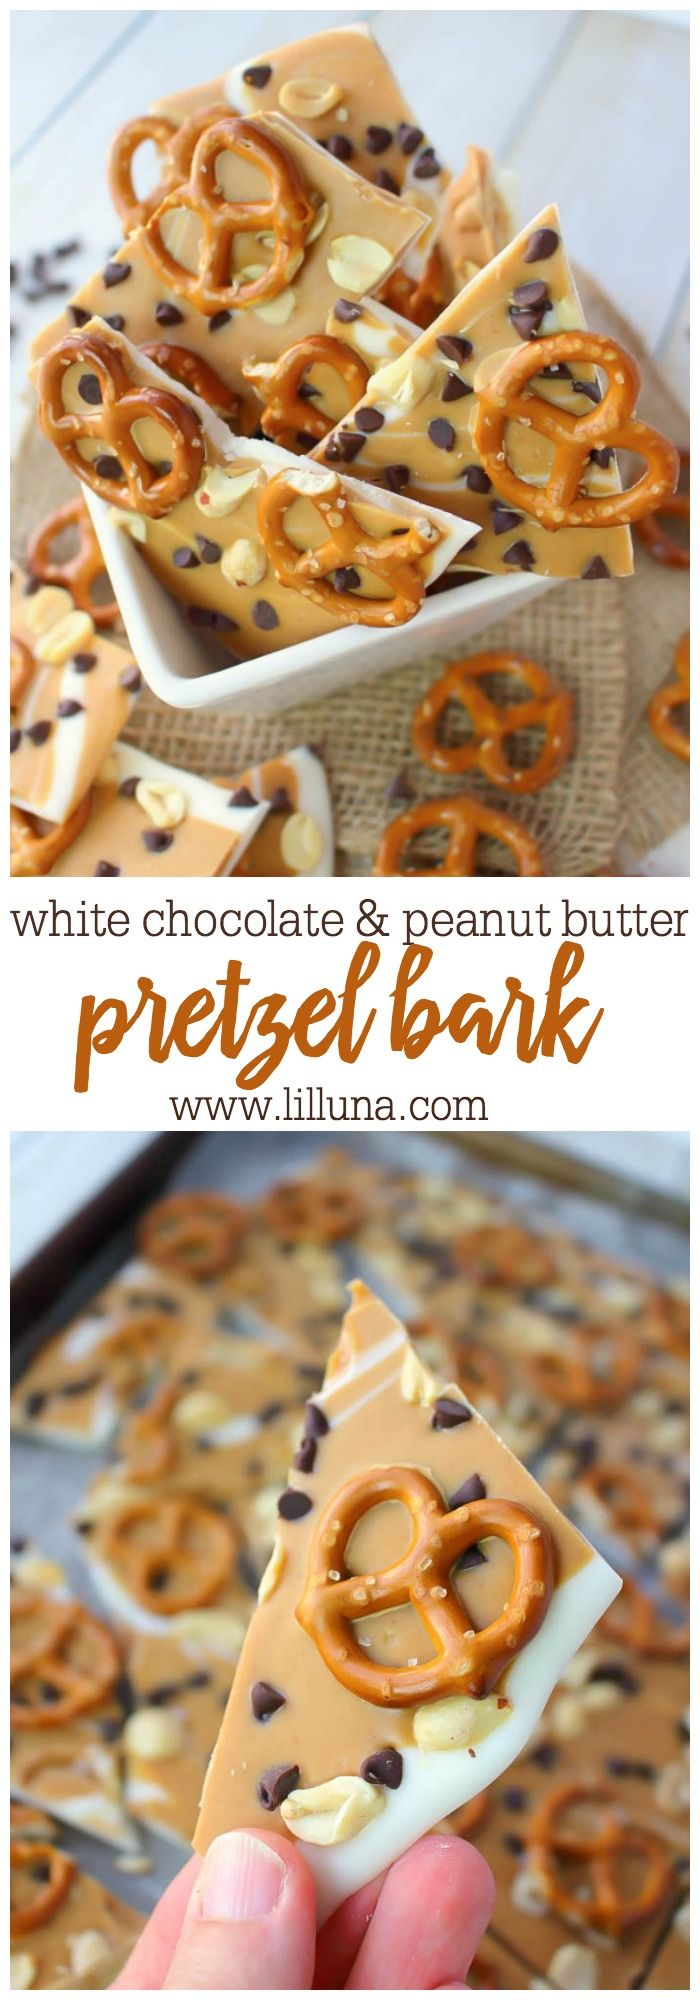 The ultimate salty sweet treat! This White Chocolate Peanut Butter Pretzel Bark is super simple to make and just requires a few basic steps. Pretzels, peanuts, and mini-chocolate chips are the perfect topping for candy! Fantastic for all of your holiday cookie & candy trays, too!